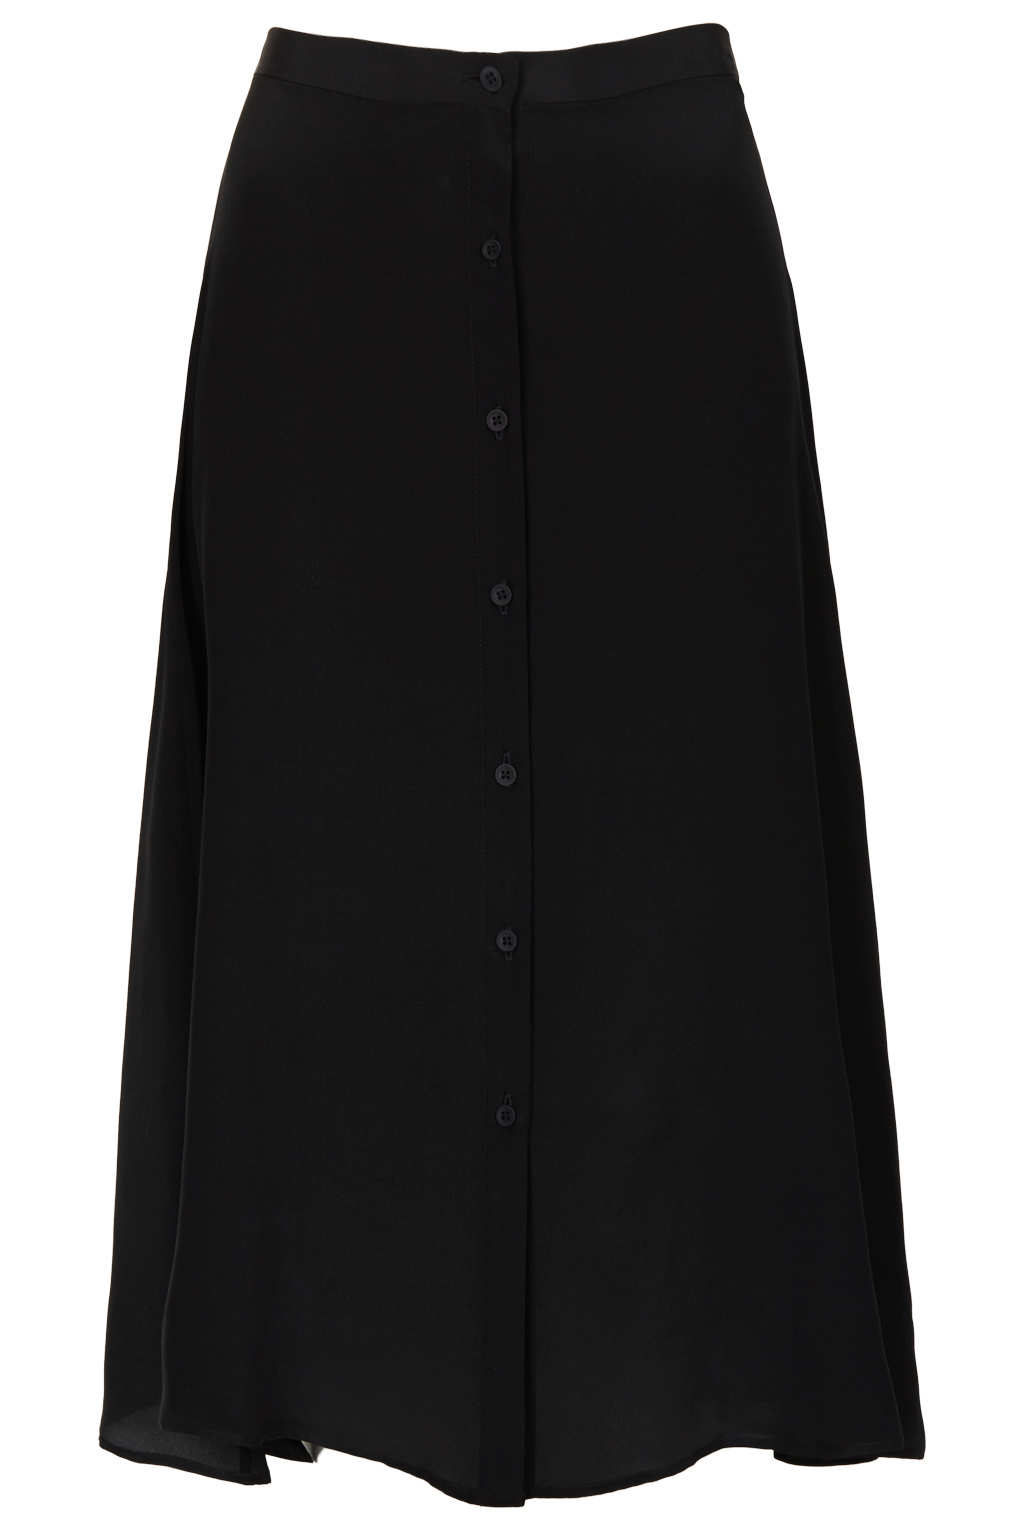 topshop silk button midi skirt by boutique in black lyst